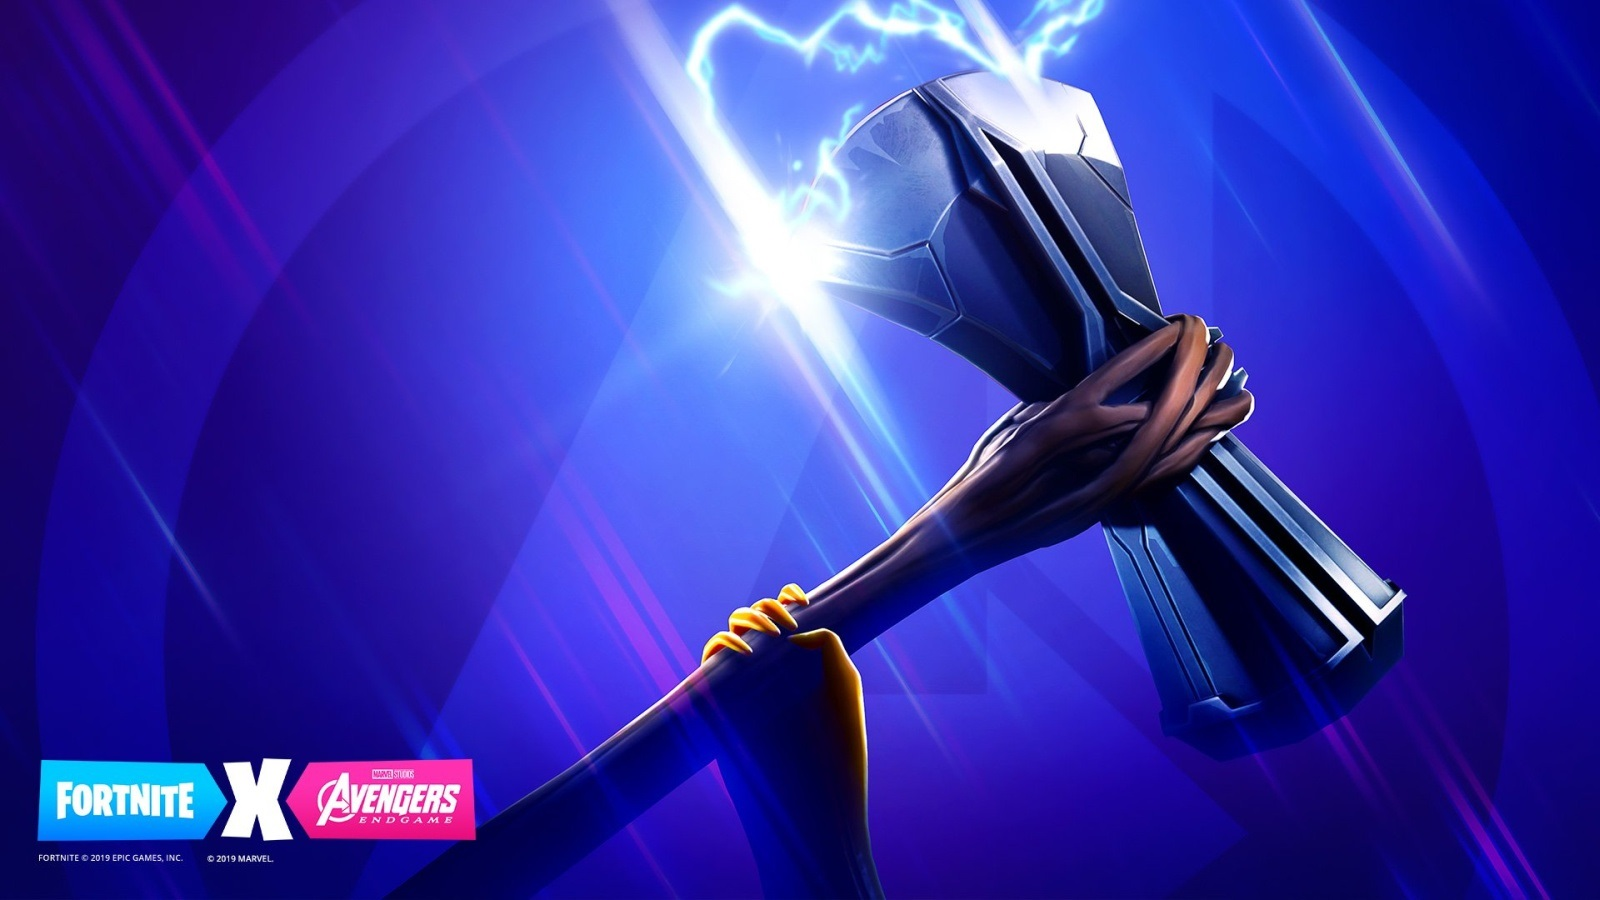 Fortnite; screenshot: Avengers, Thor